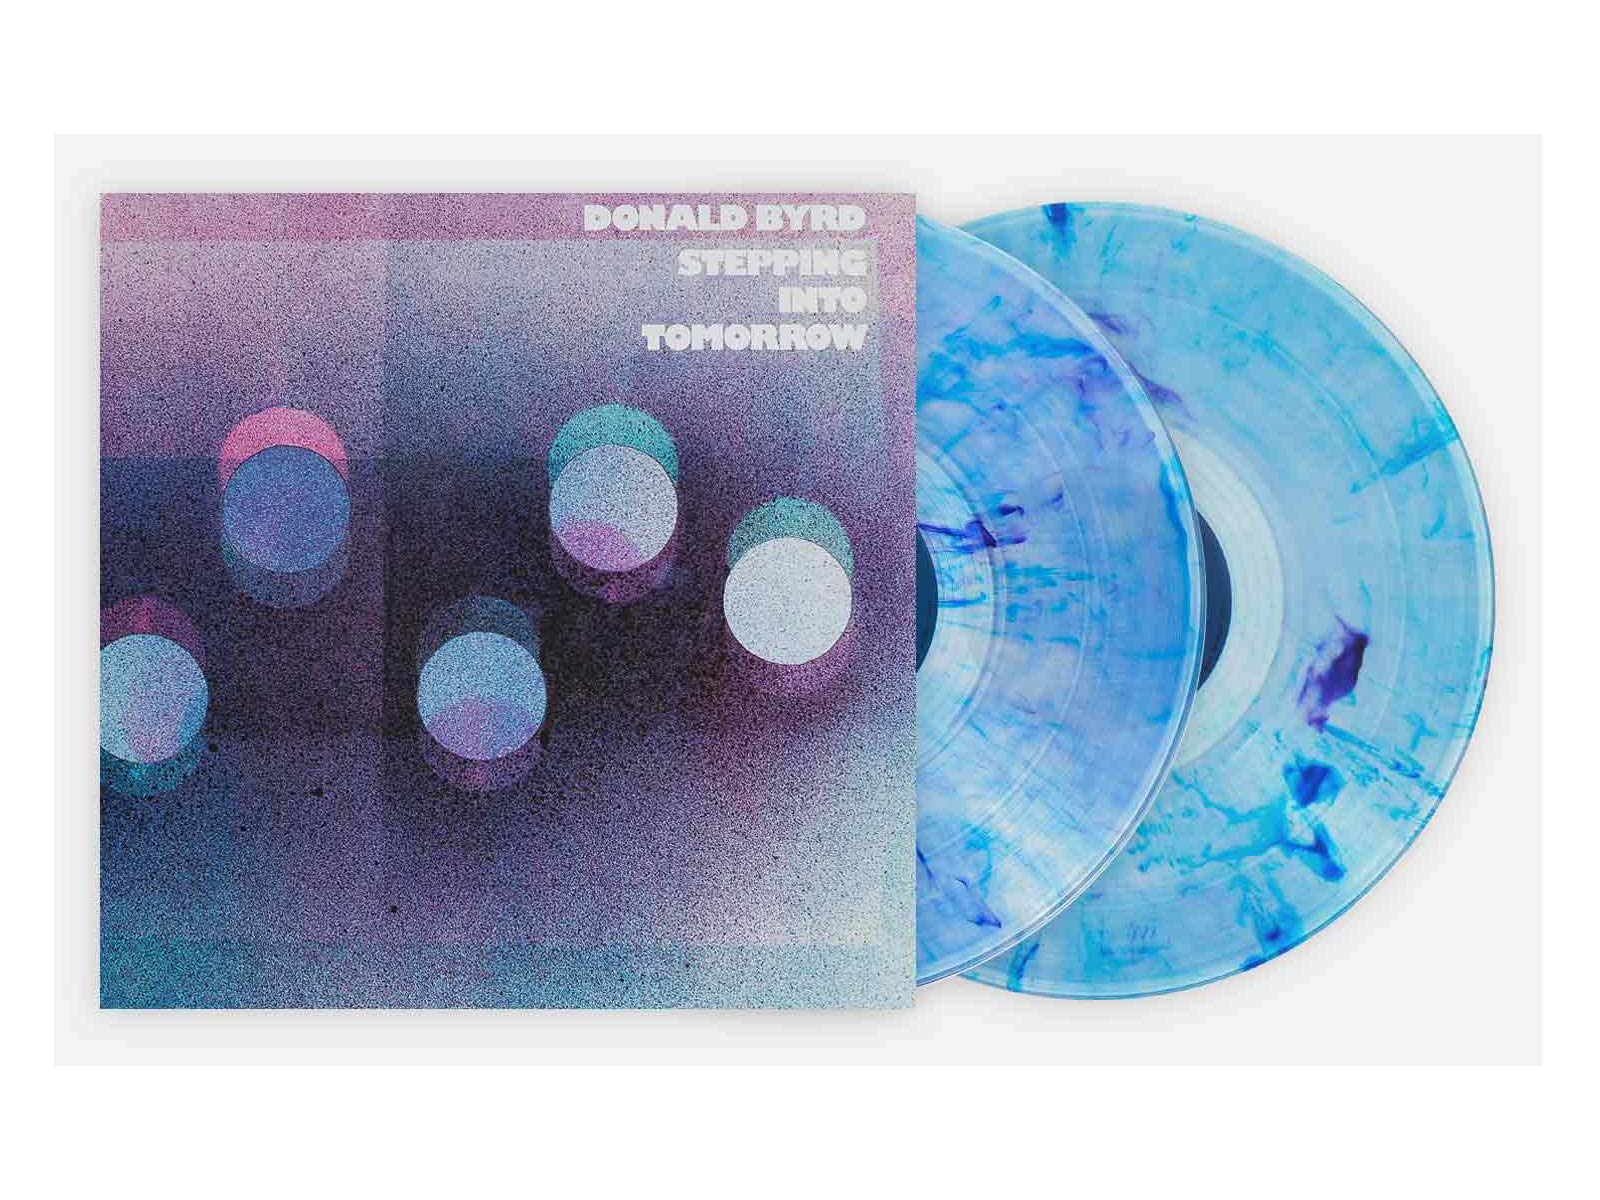 Donald Byrd - Stepping Into Tomorrow Exclusive Edition [Purple & Blue 180 gram, 2XLP vinyl] by Blue Note